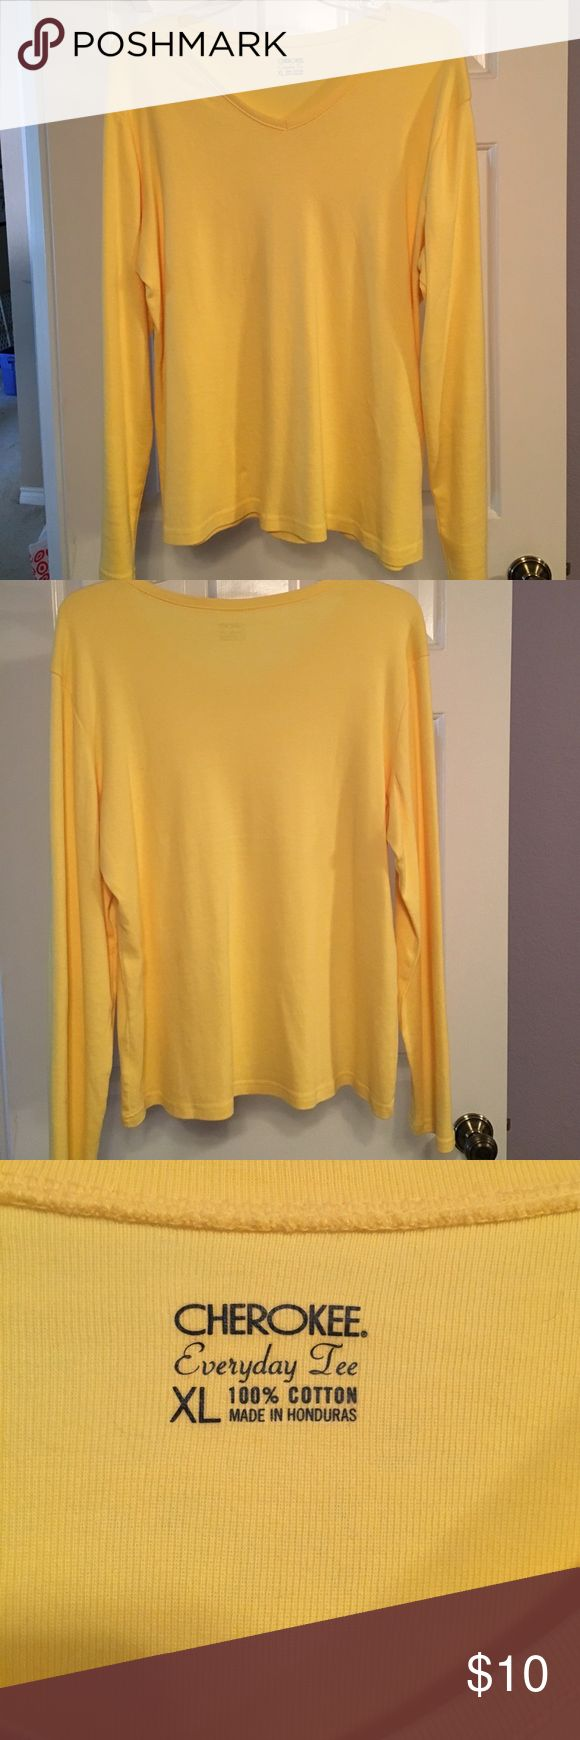 💥FINAL💥-Cherokee brand long sleeve yellow tee 💥LOWEST FINAL PRICE💥 - Cherokee brand long sleeve yellow v-neck tee shirt. NWOT. 100% cotton. Removed tags to wear & it was too big. Non smoking environment. Pet friendly household. Cherokee Tops Tees - Long Sleeve